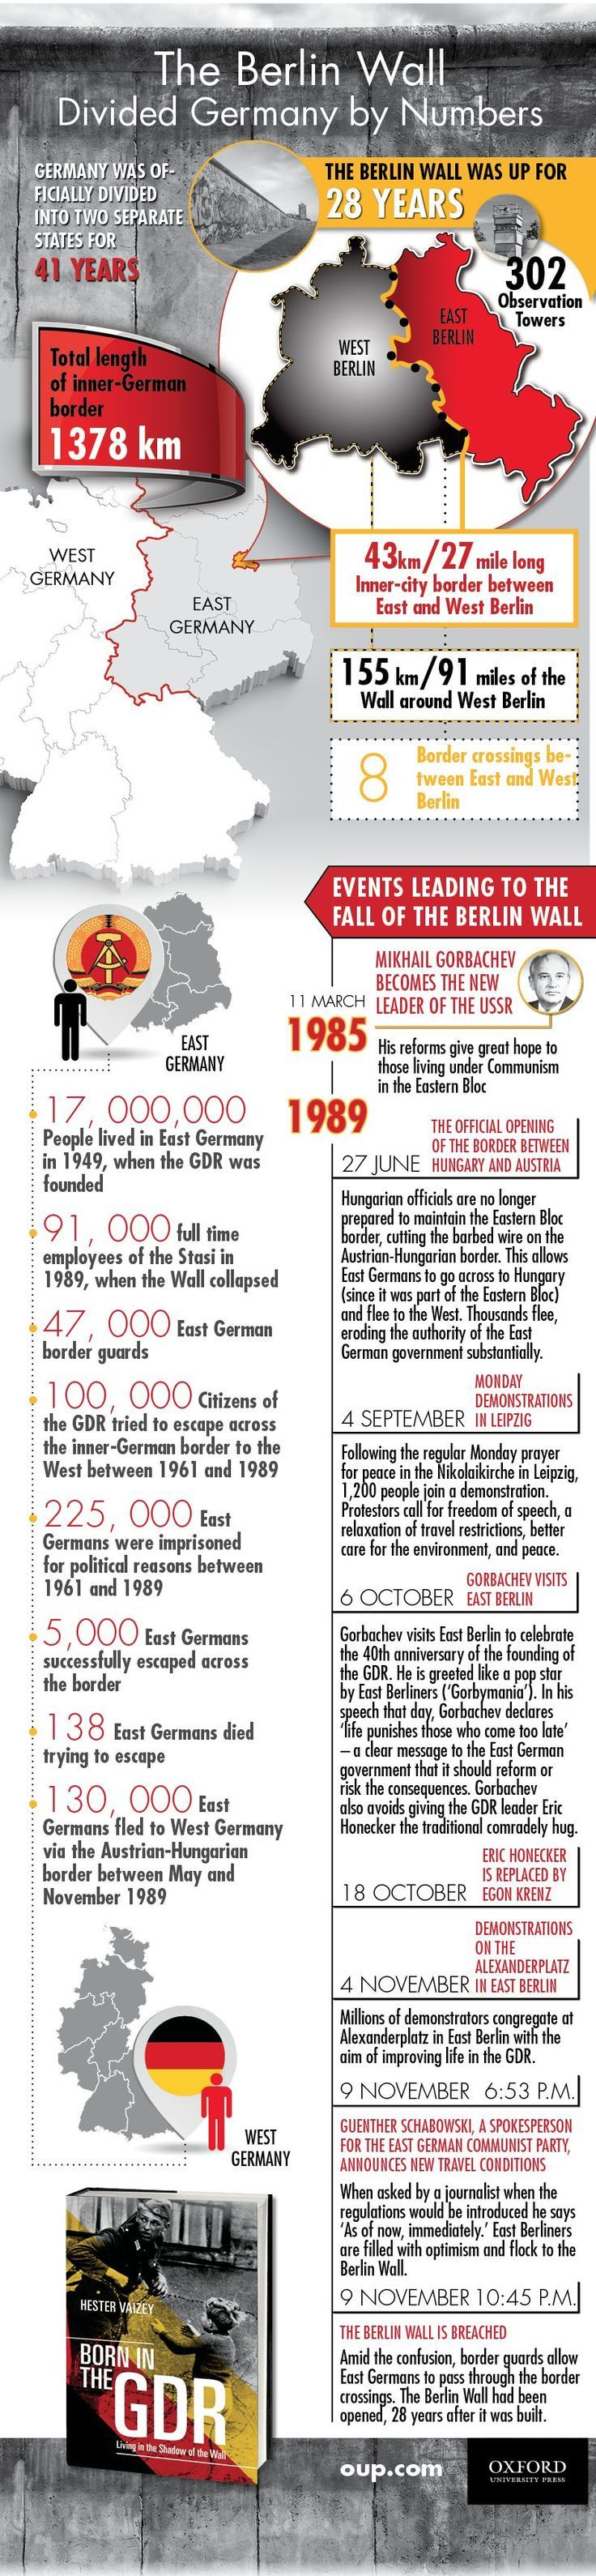 How was Germany divided before the fall of the Berlin Wall on November 9th, 1989?